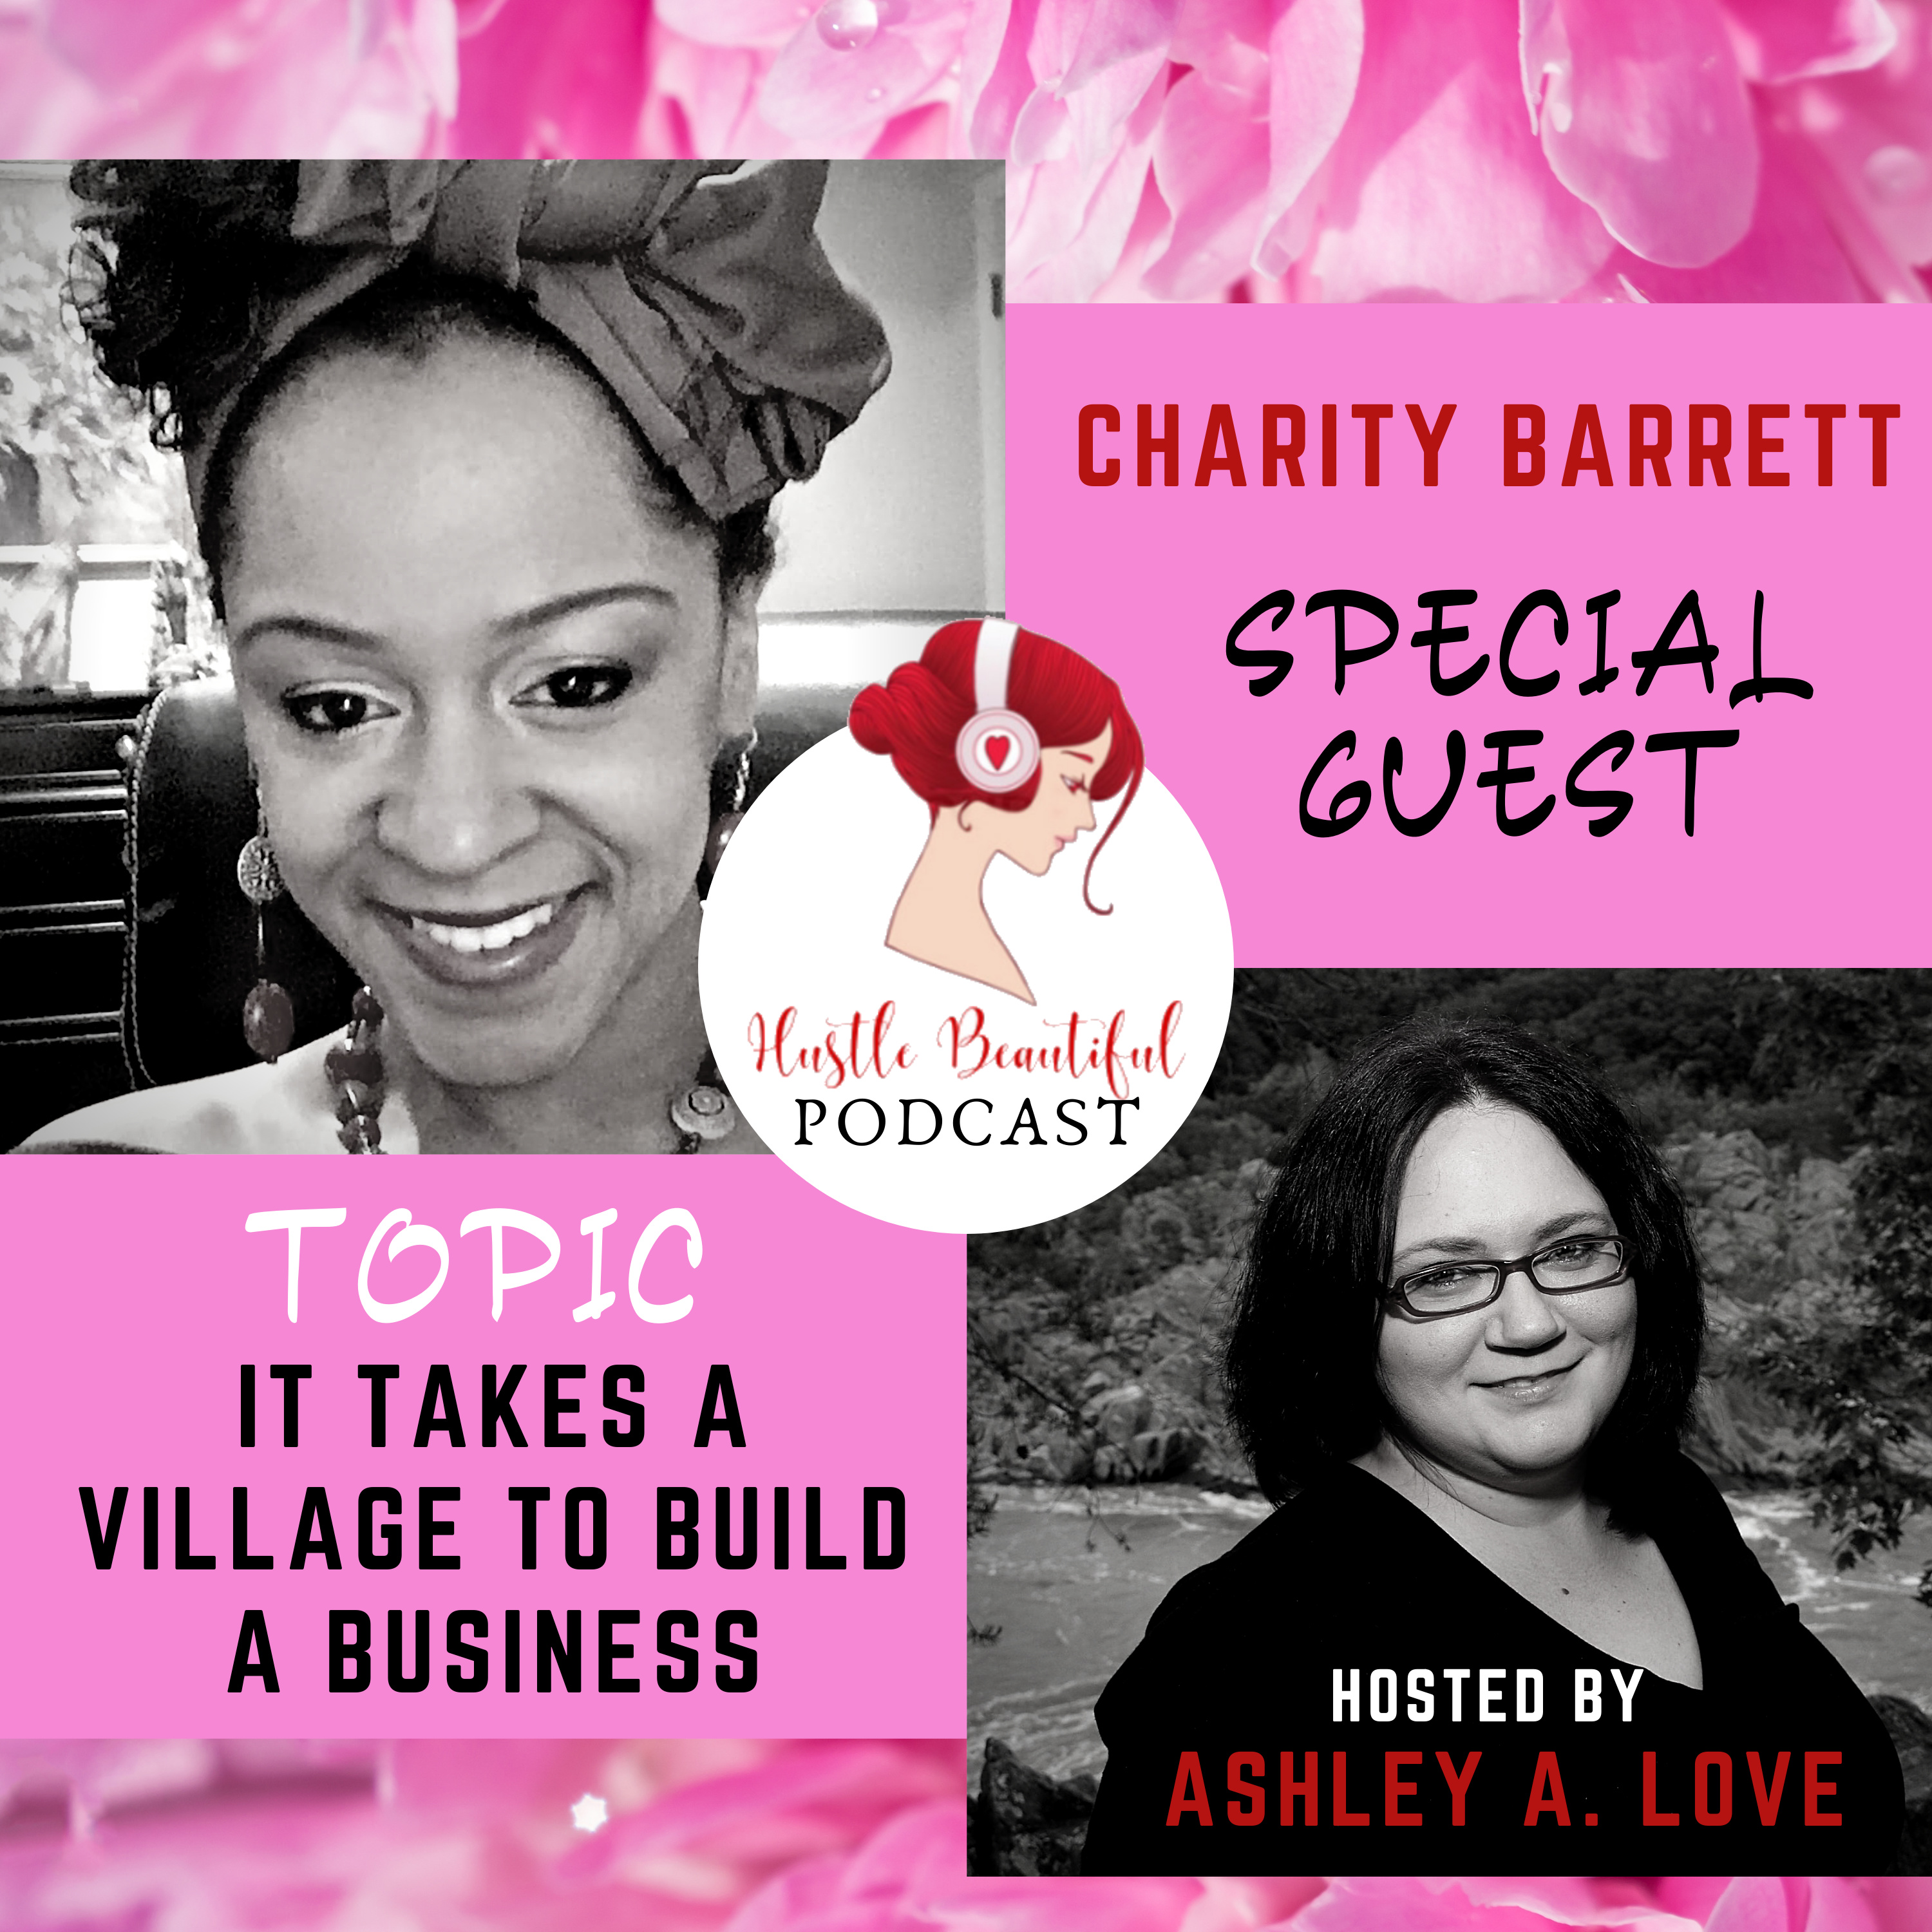 It Takes A Village to Build A Business with Charity Barrett